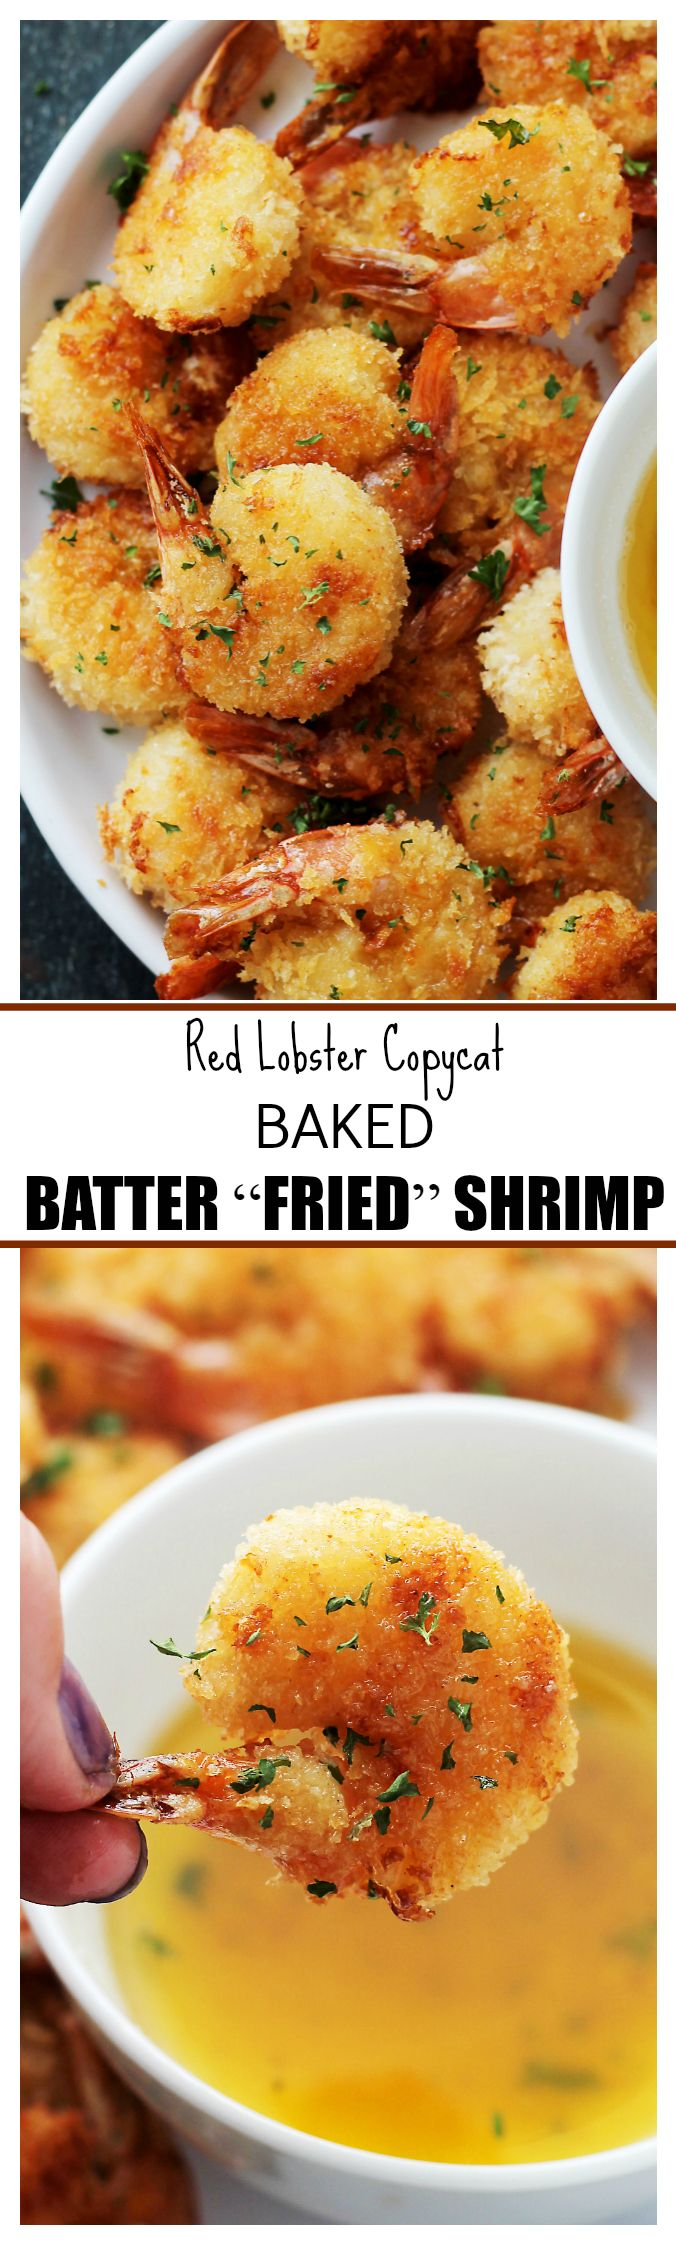 "Baked Batter ""Fried"" Shrimp with Garlic Dipping Sauce – If you are a fan of Red Lobster's Batter Fried Shrimp, then you are going to LOVE this healthier, homemade version in which the shrimp are baked instead of fried and they taste amazing!"